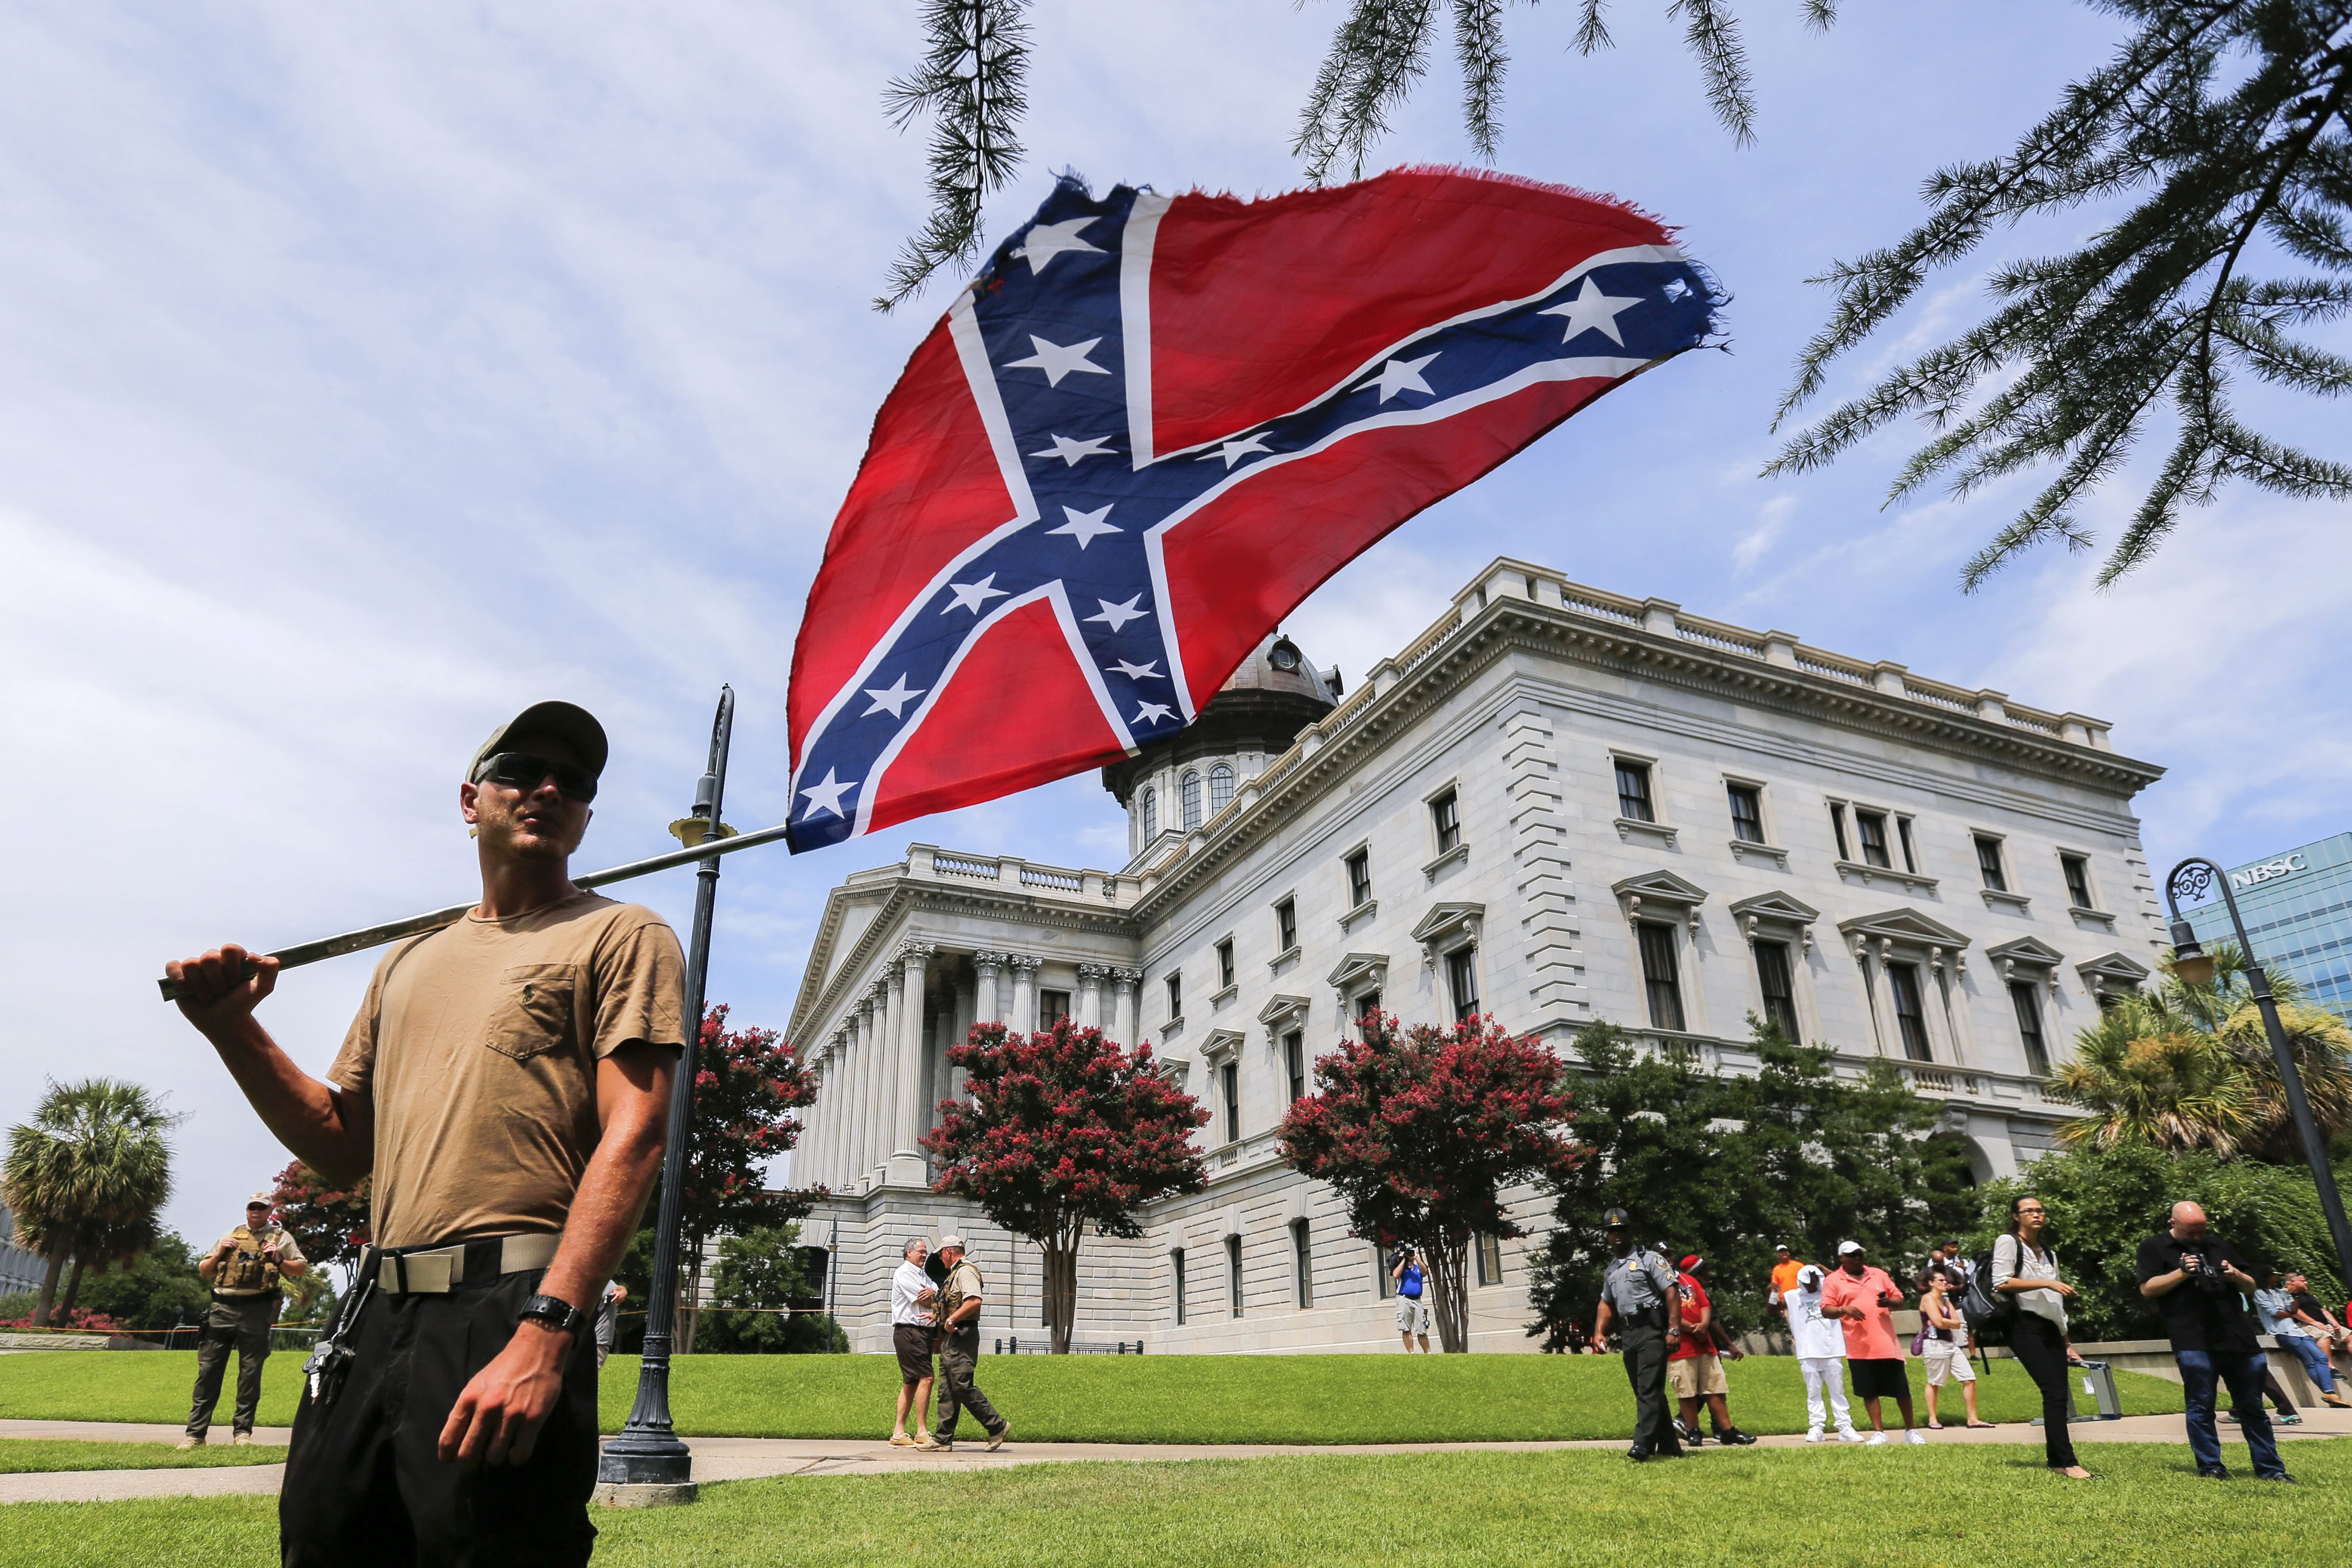 A man displays a Confederate battle flag during New Black Panther Party and Ku Klux Klan rallies on the grounds of the South Carolina Capitol in Columbia, S.C. on July 18, 2015.